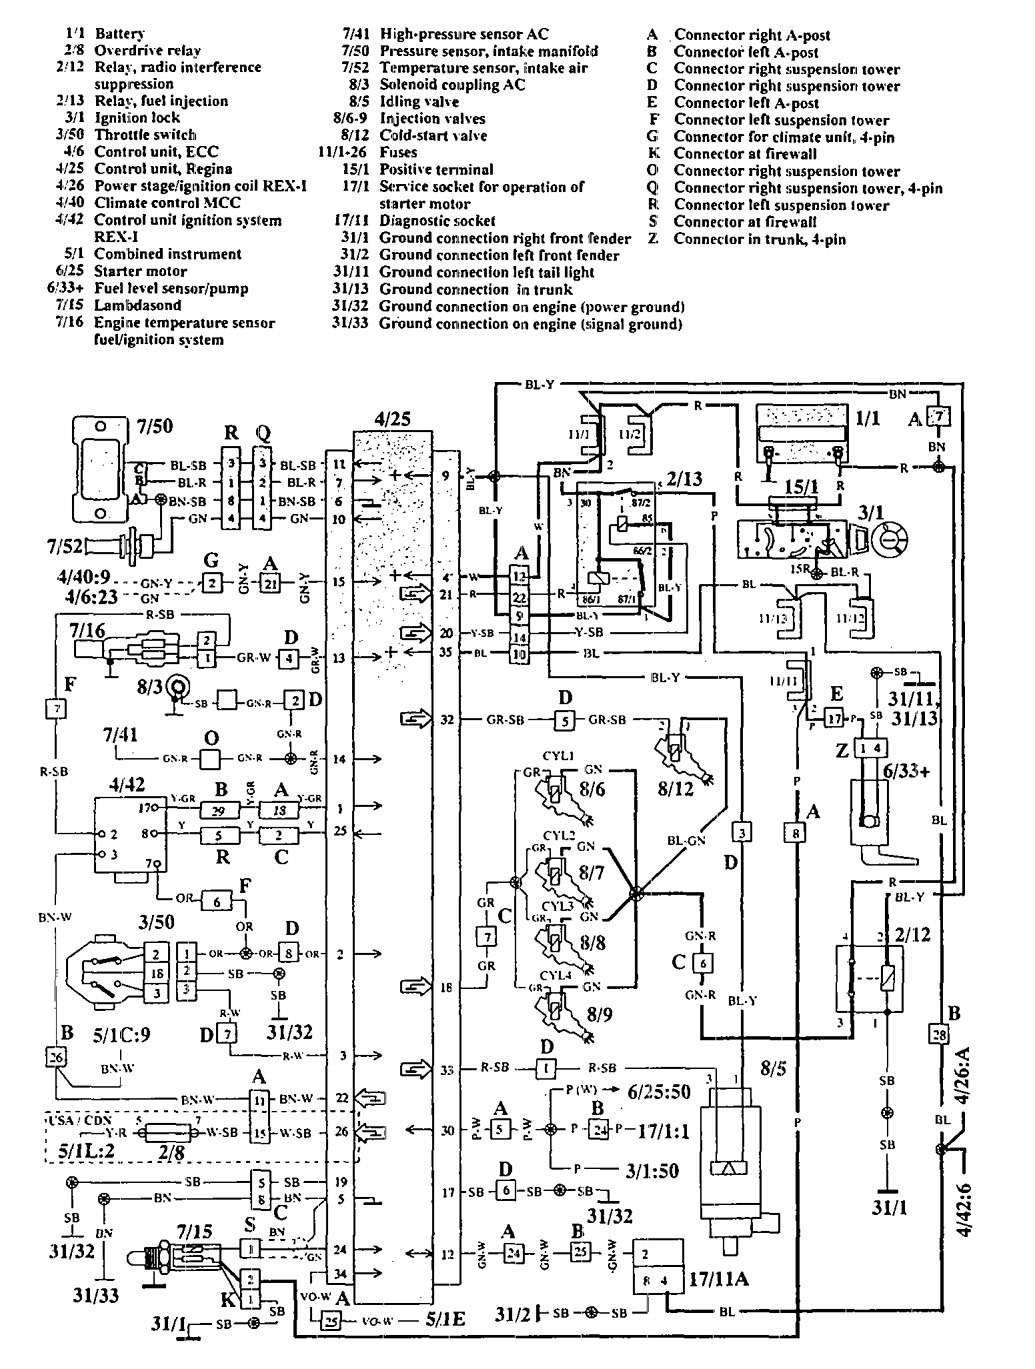 hight resolution of tags volvo 2006 wiring diagram volvo amplifier wiring diagrams volvo penta wiring diagram volvo wiring schematics volvo penta 3 dodge wiring diagrams ktm